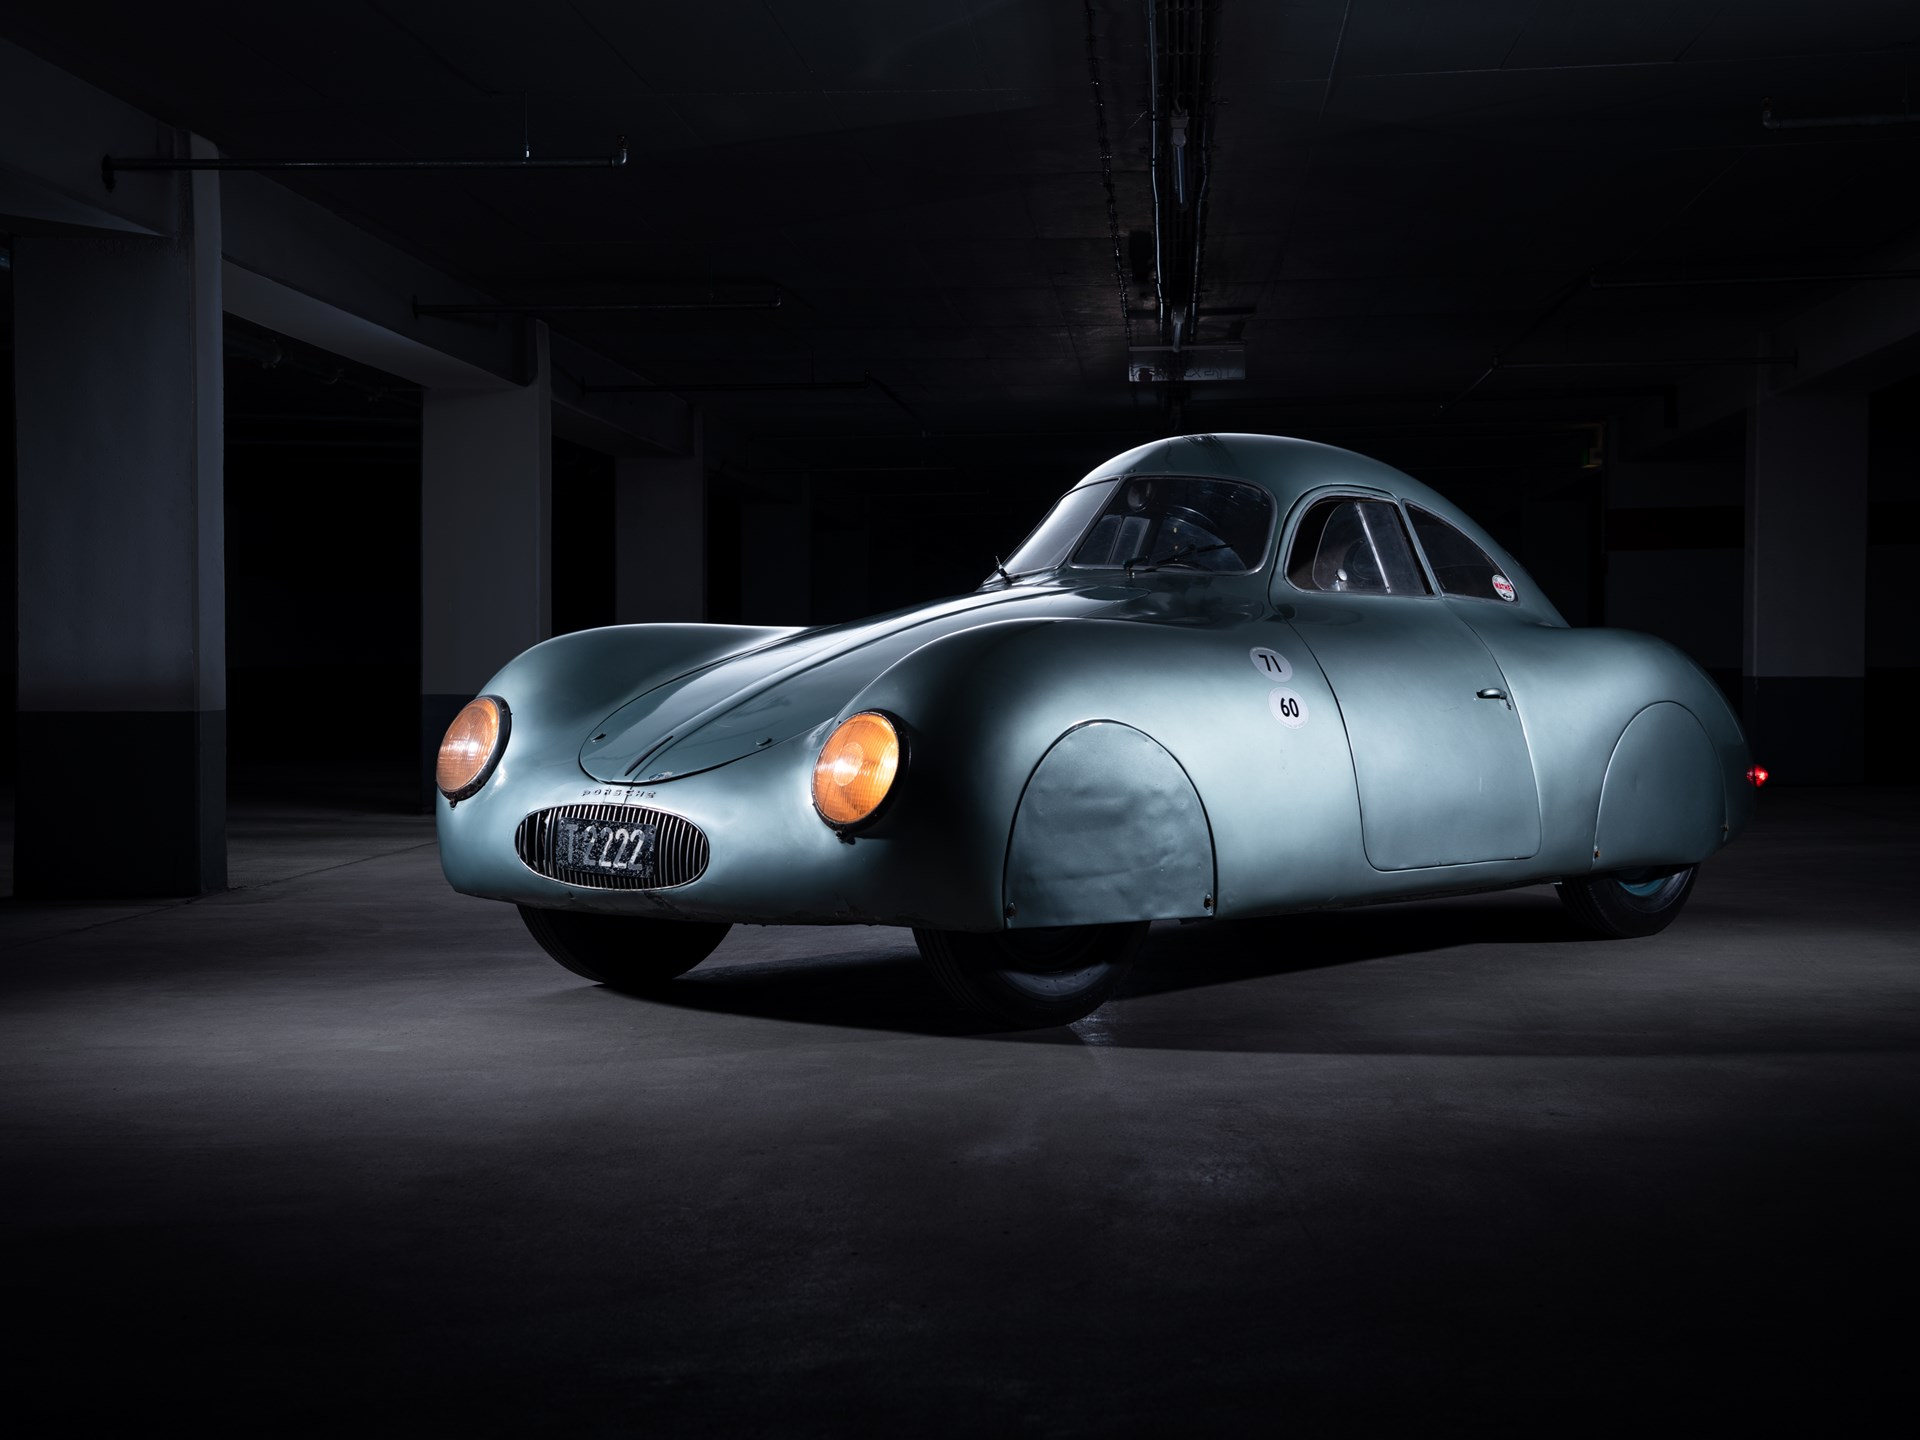 نتيجة بحث الصور عن ‪Porsche Model 64 at Sotheby's auction‬‏